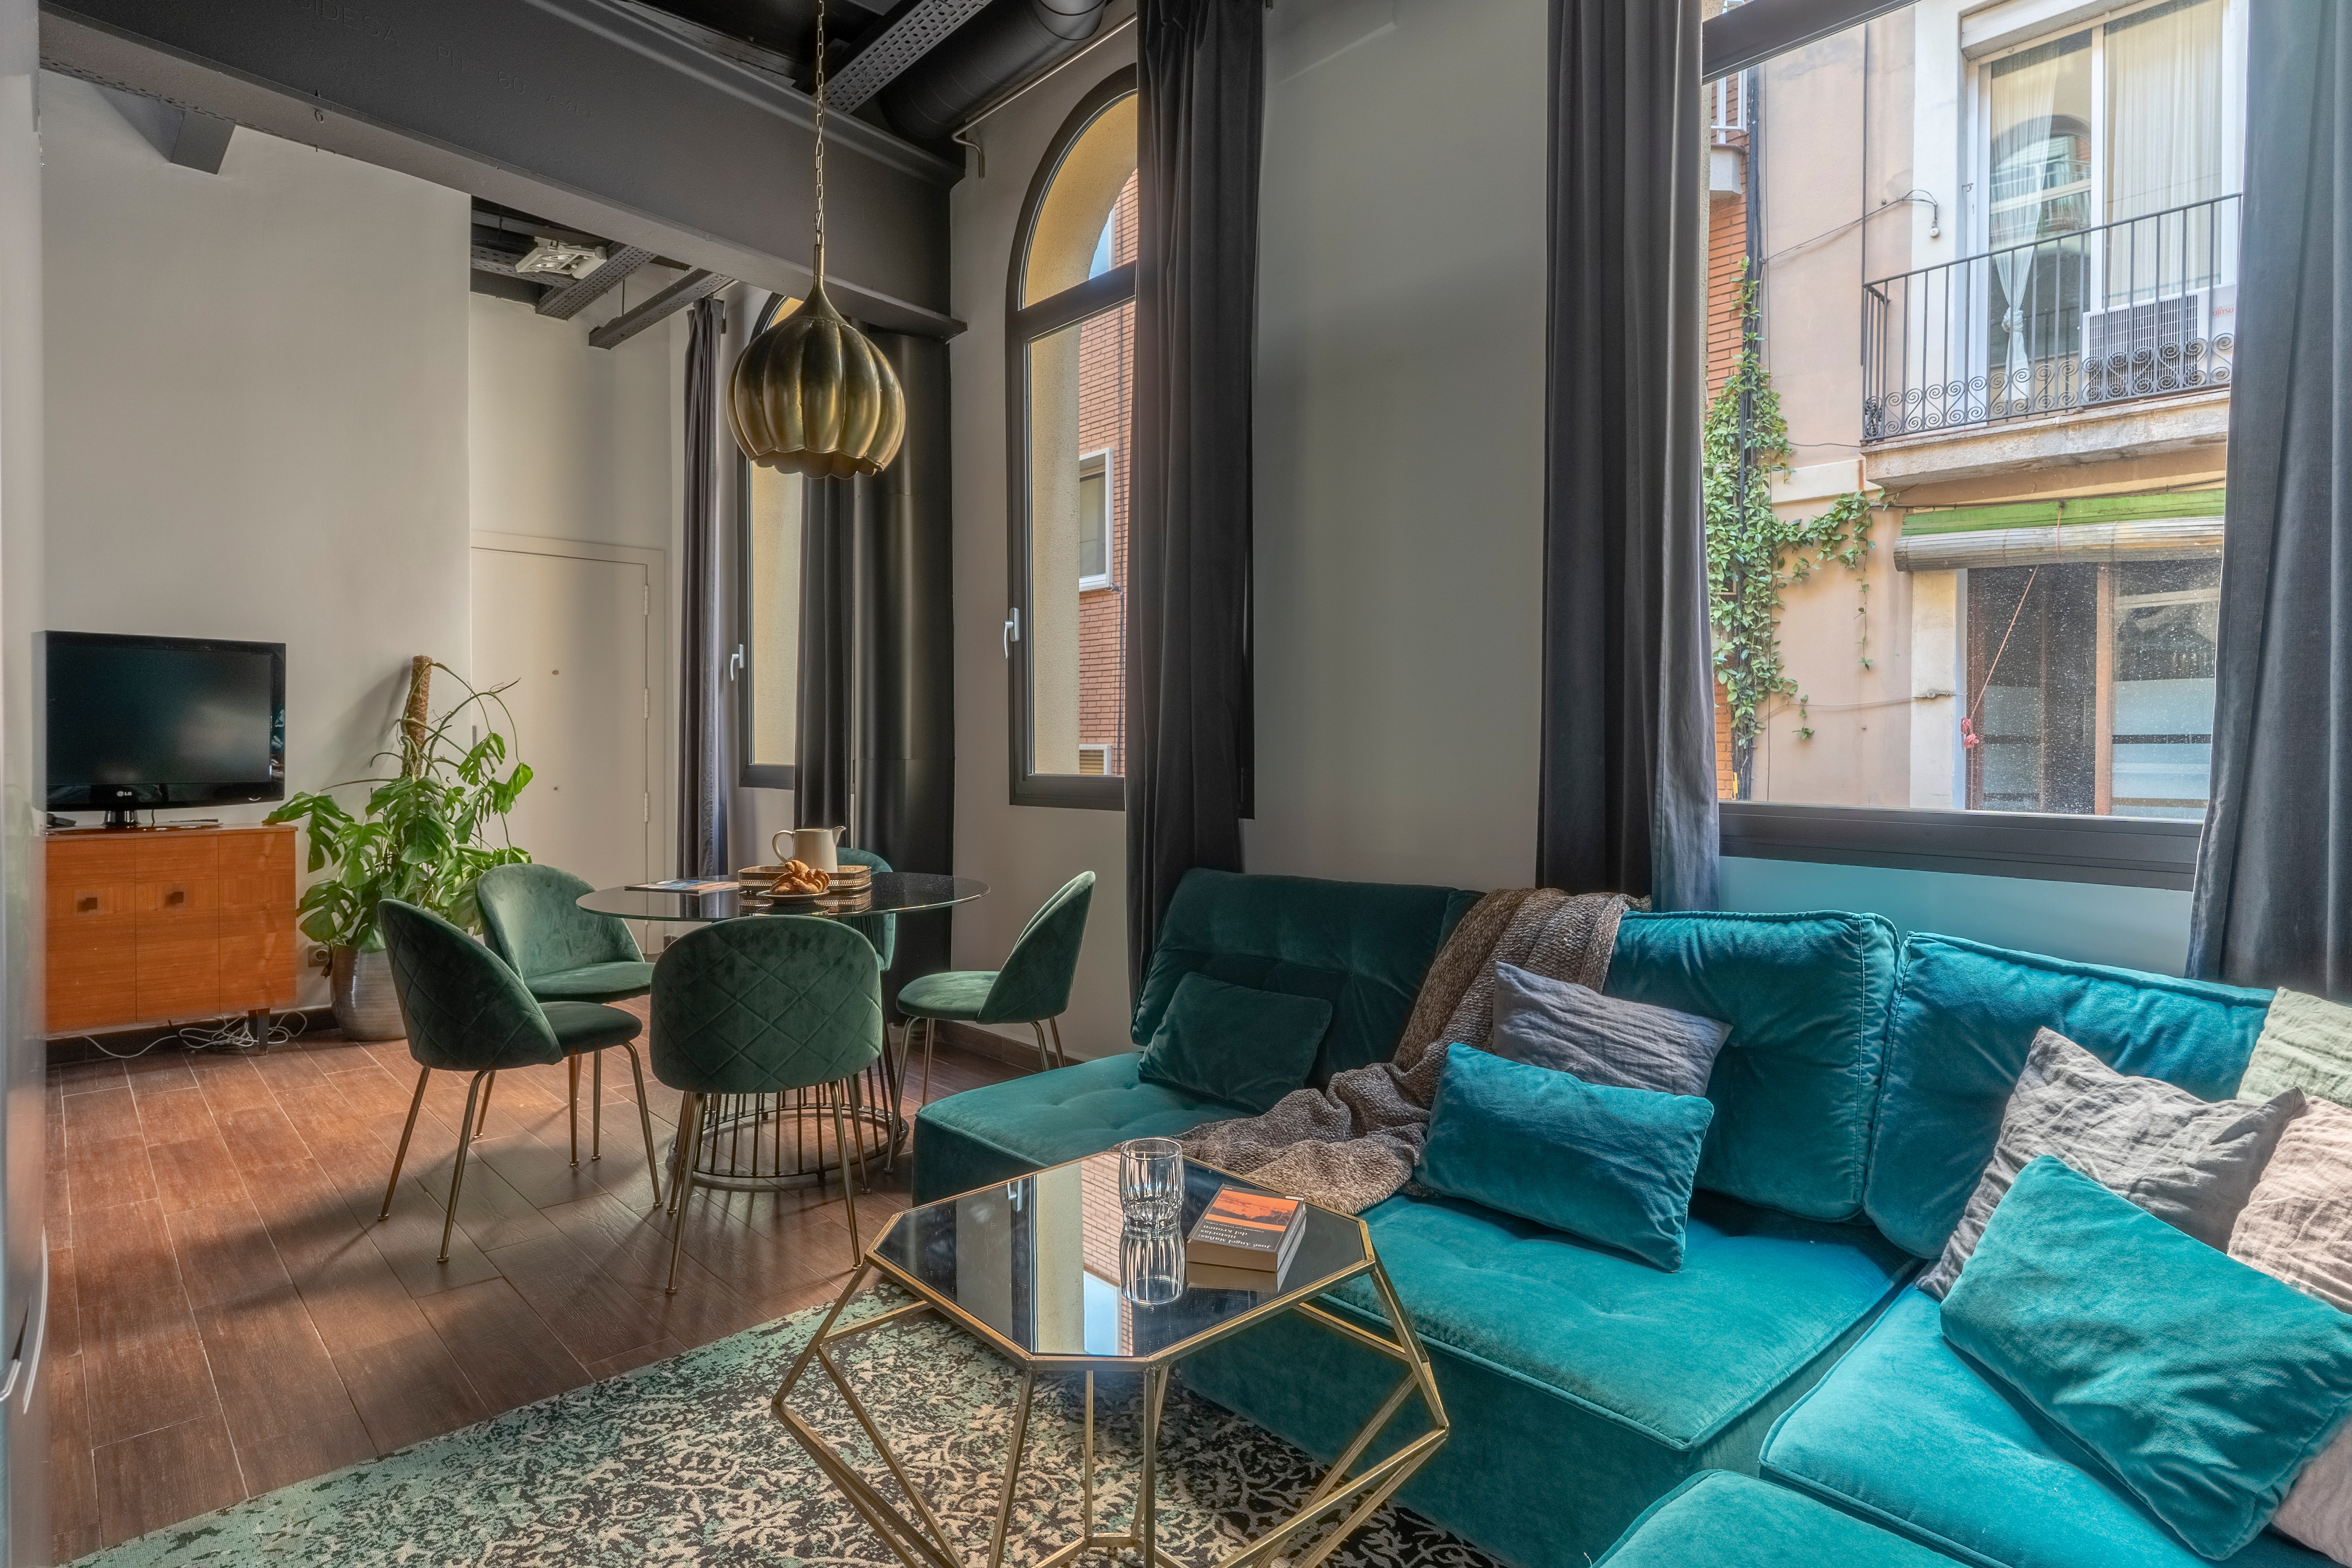 Property Image 2 - Remarkable 2 bedroom apartment in Gracia